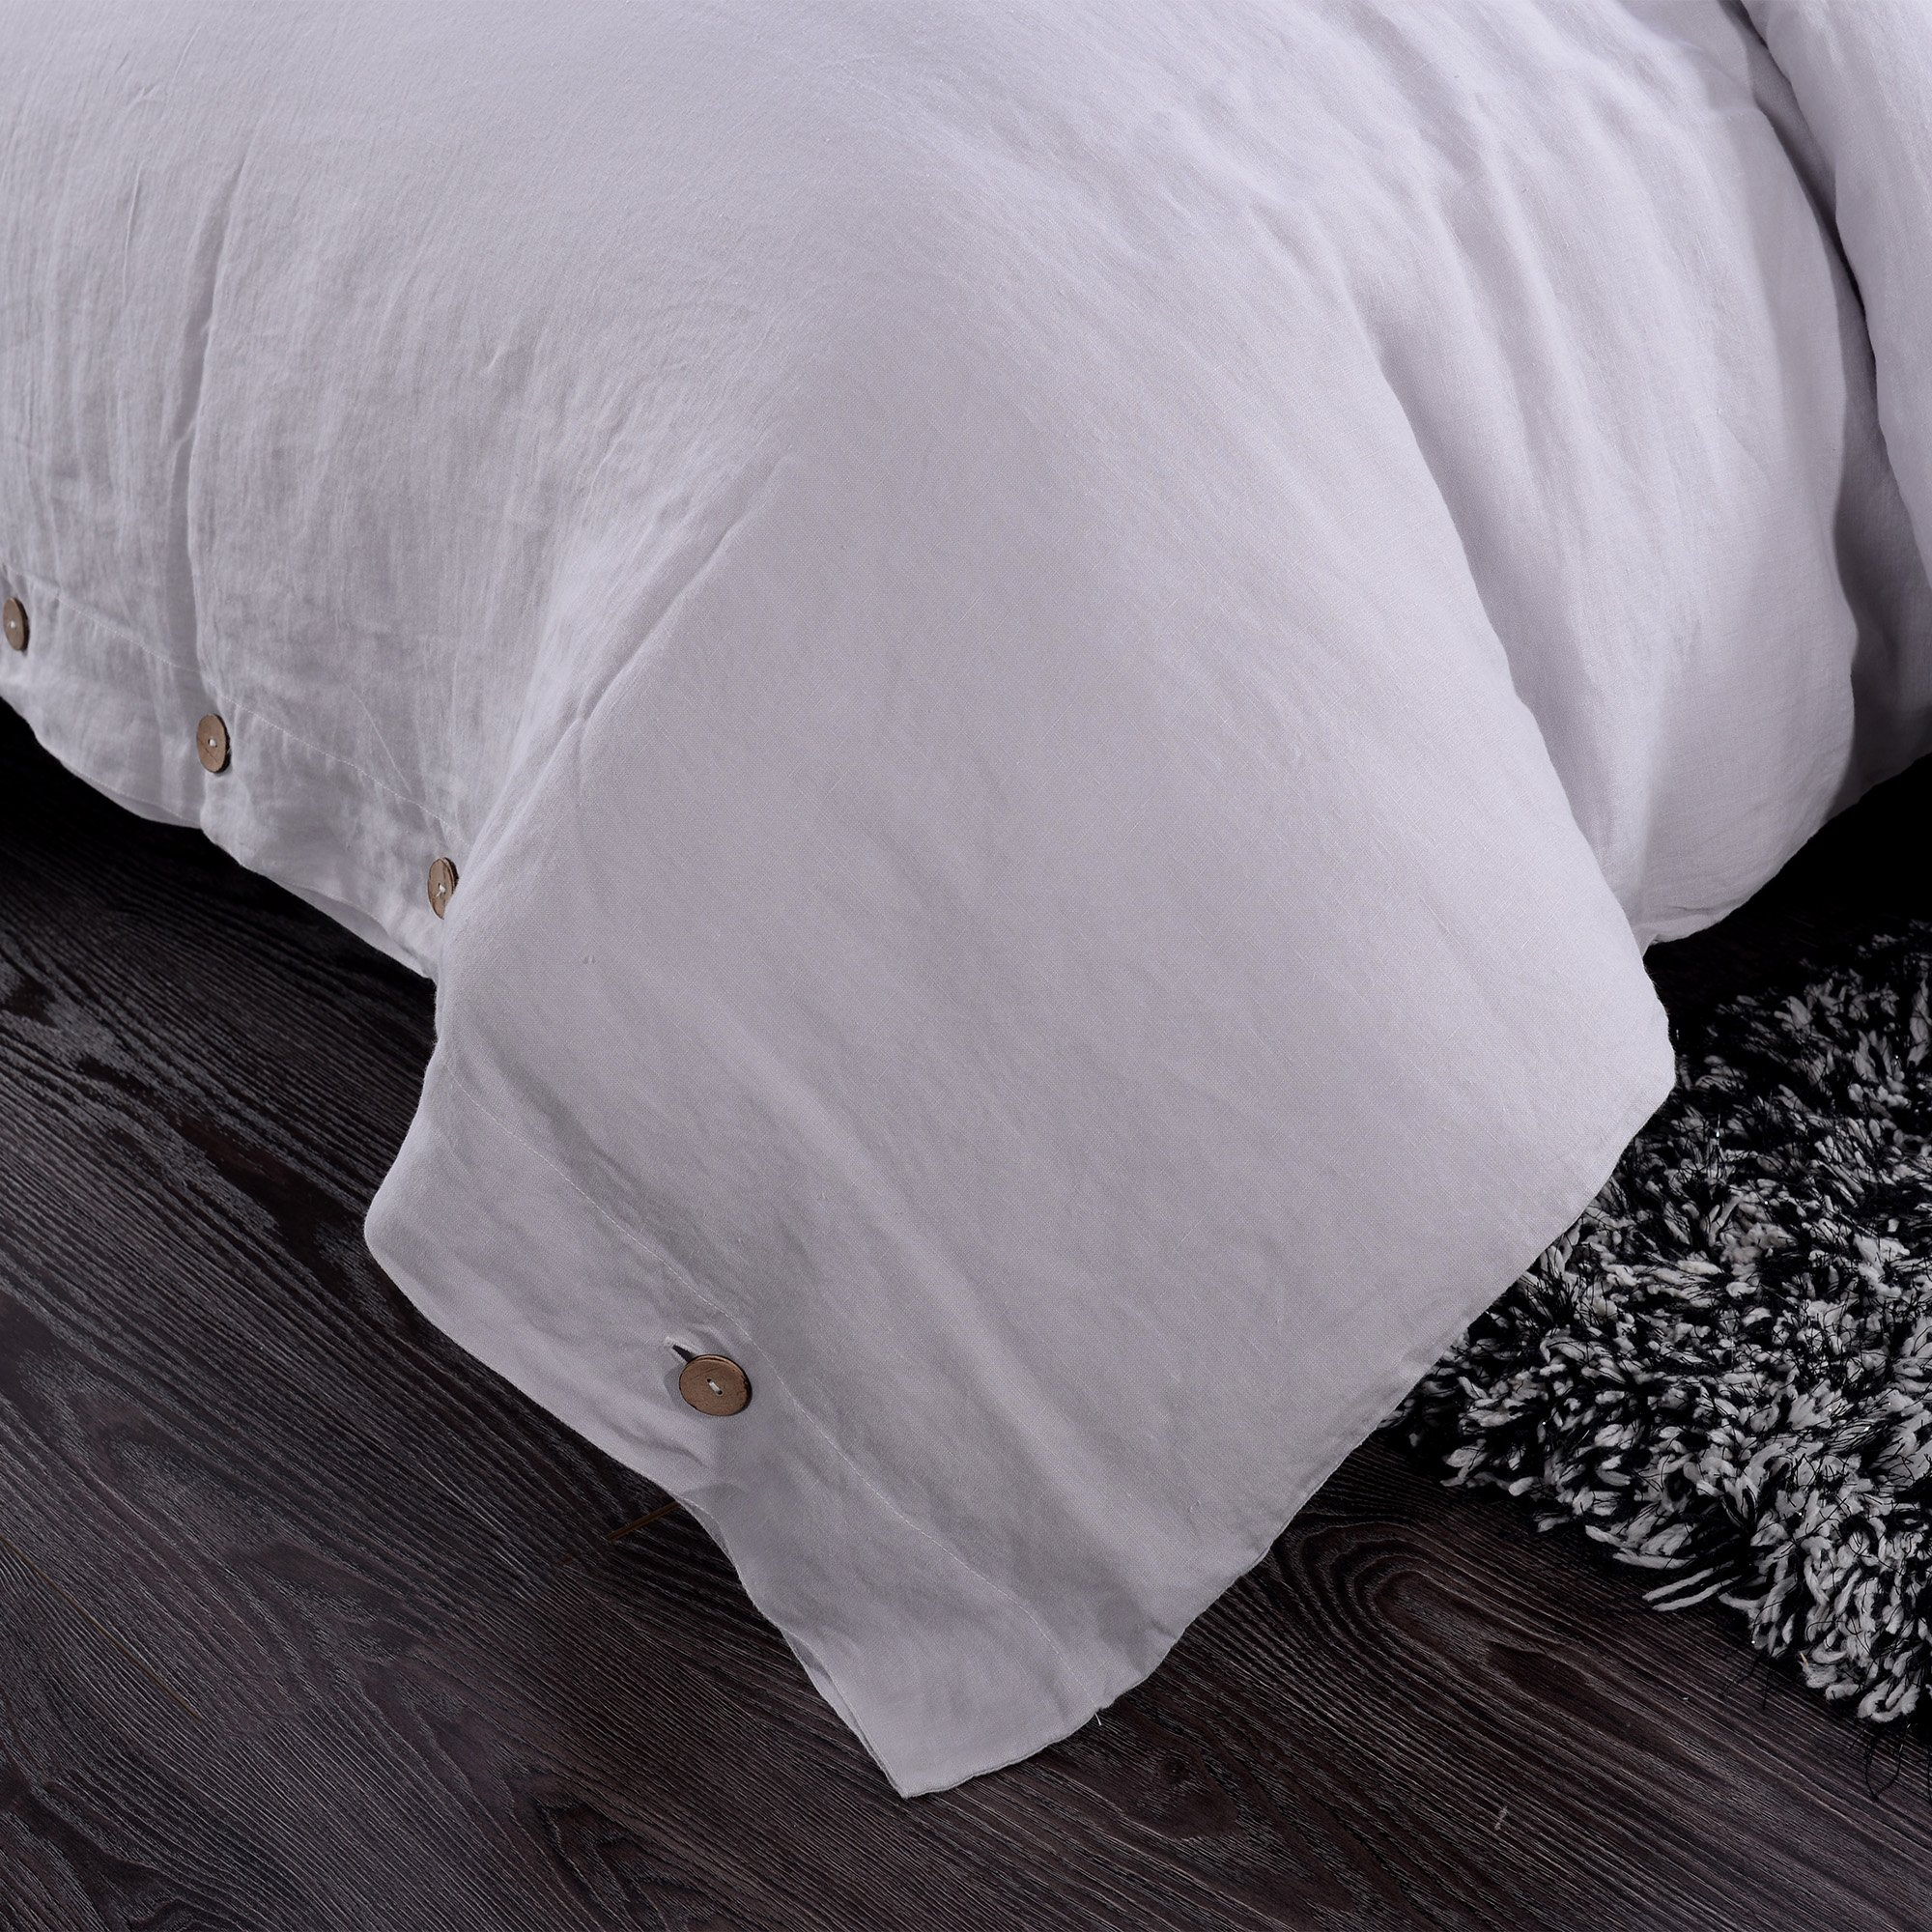 Simple&Opulence 100% Washed Linen Coconut Wood Deduction Solid Grey Bedding Set with 1 Duvet Cover 1 Pillowcase (Twin, Light Grey) by Simple&Opulence (Image #2)